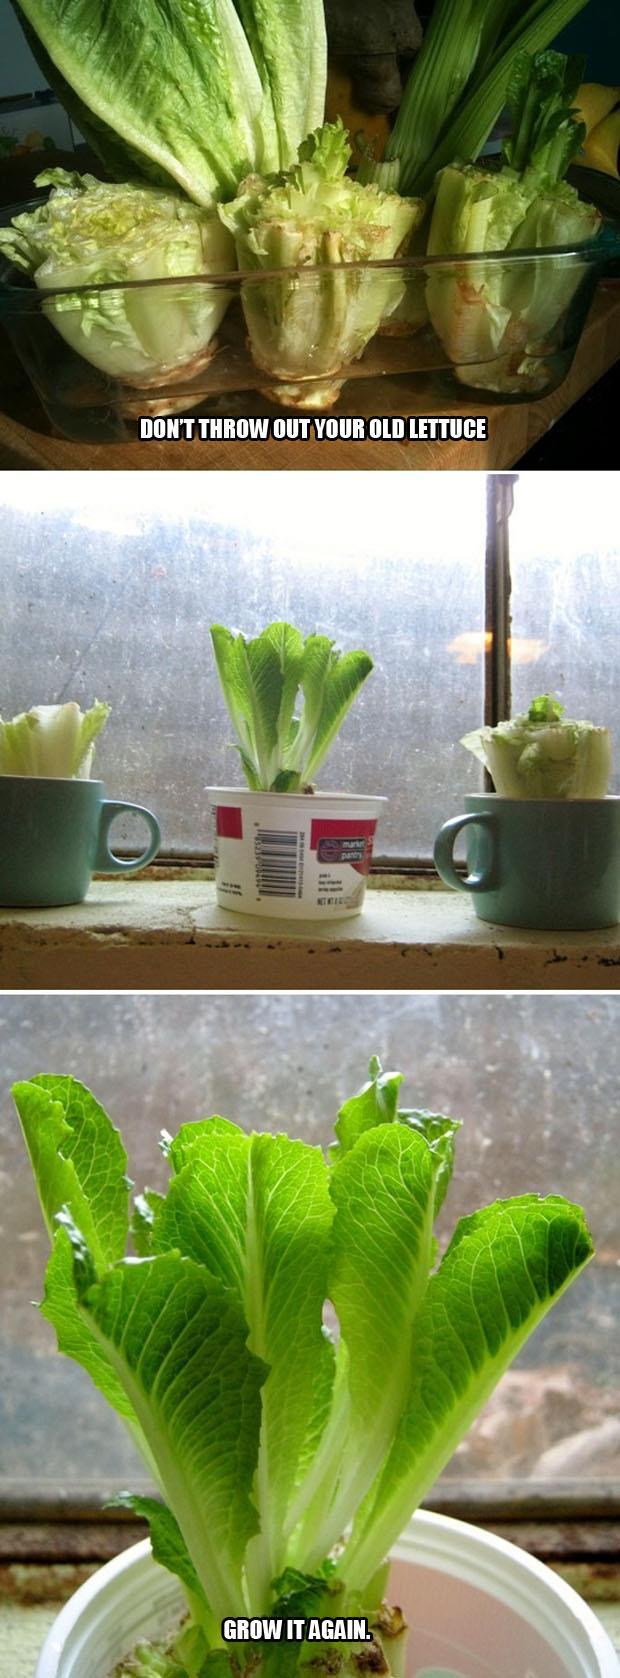 regrow lettuce how to